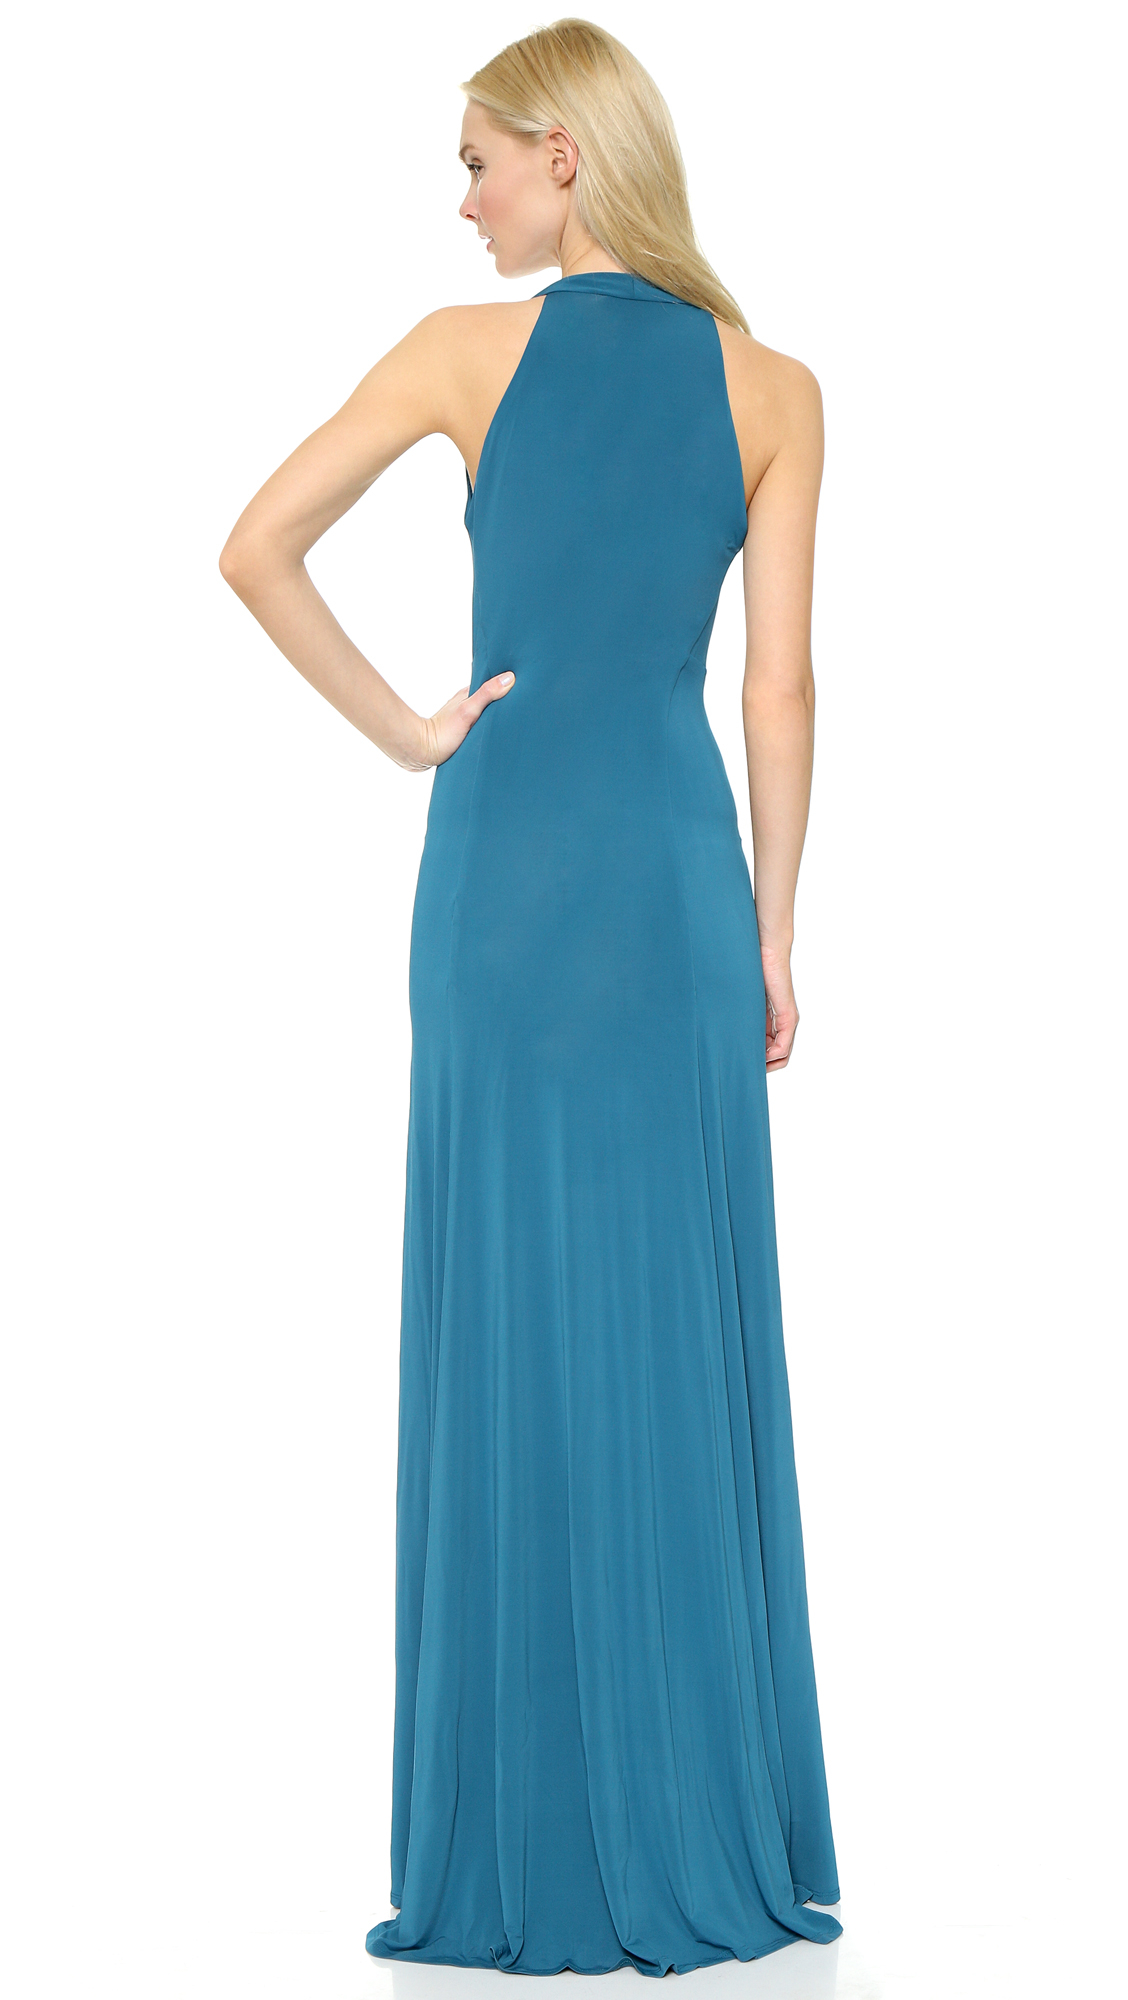 Donna Karan Sleeveless Draped Gown - Cerulean in Blue - Lyst